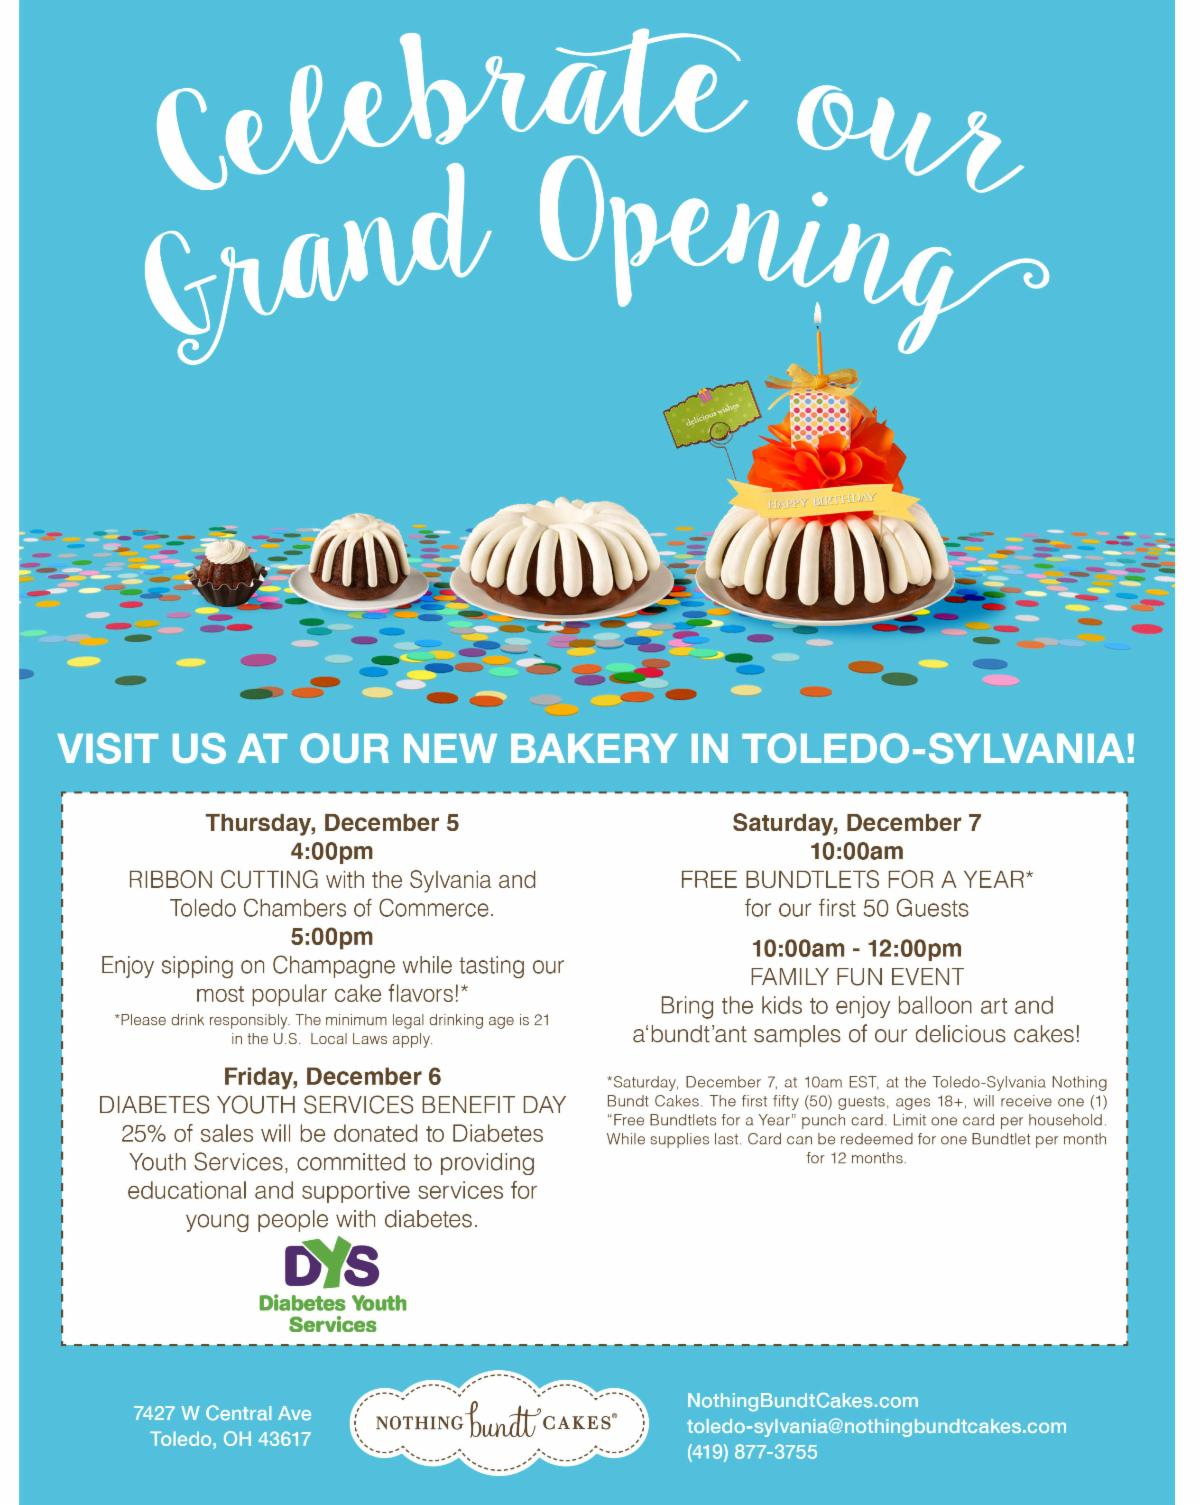 Nothing Bundt Cakes Grand Opening